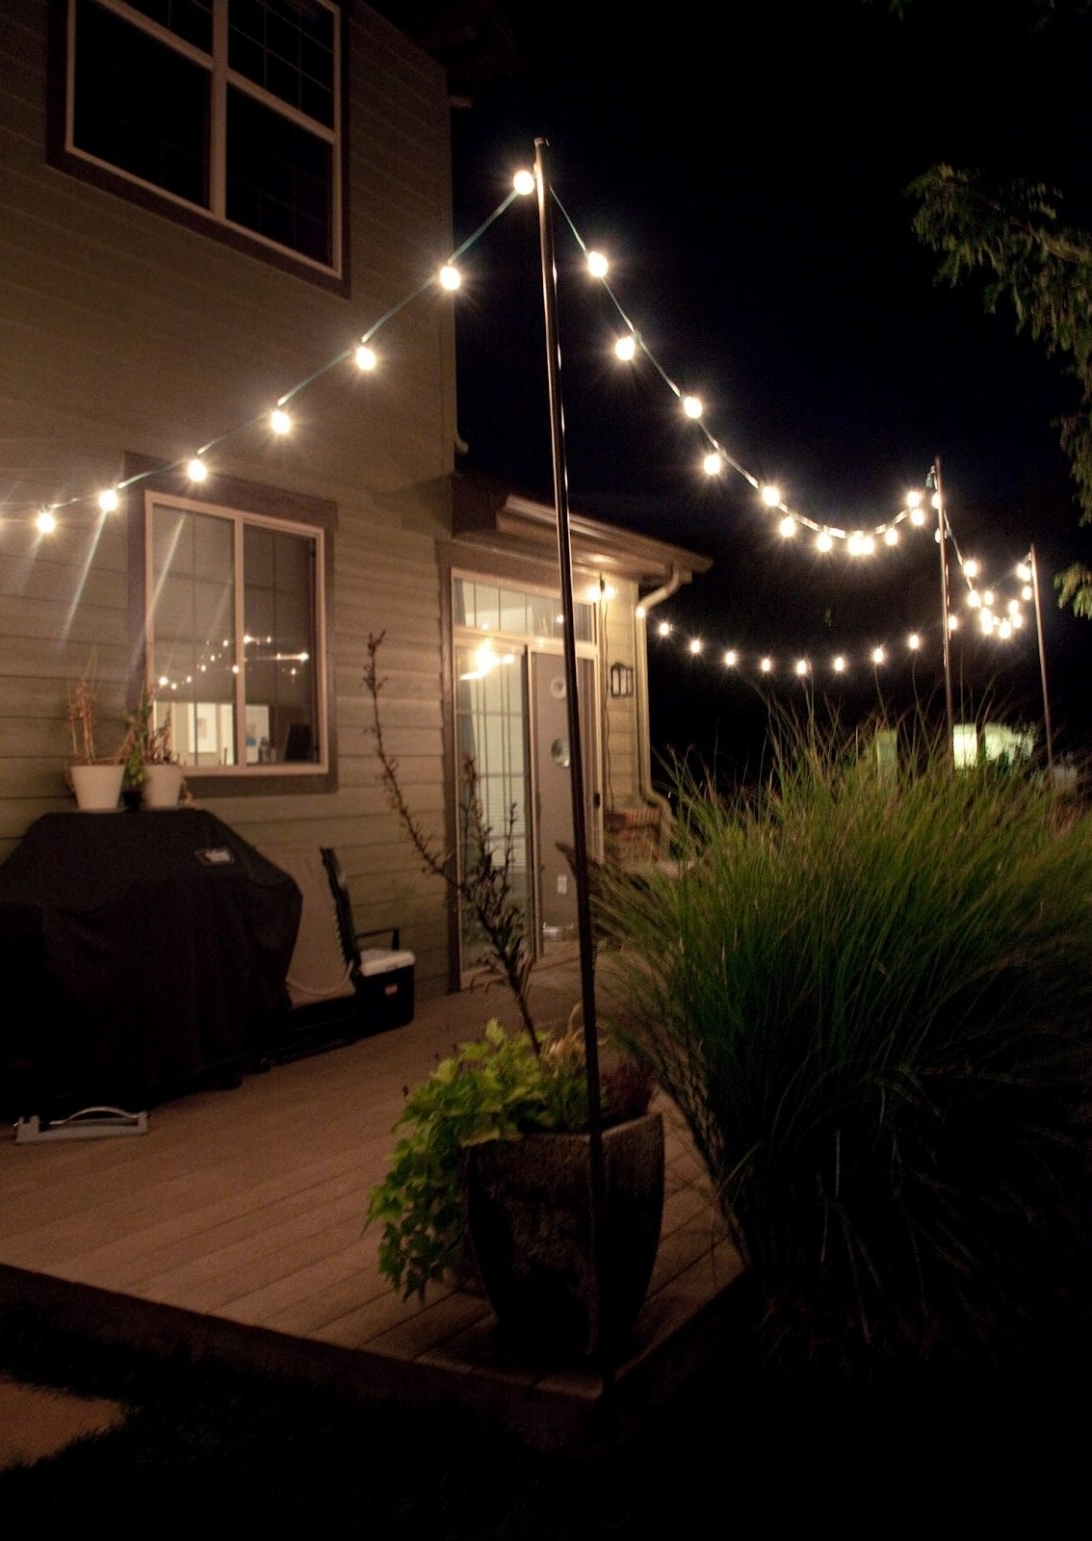 Outdoor Patio String Lighting Ideas Hanging Lights With Colonial With Recent Outdoor Hanging Lanterns For Patio (View 10 of 20)